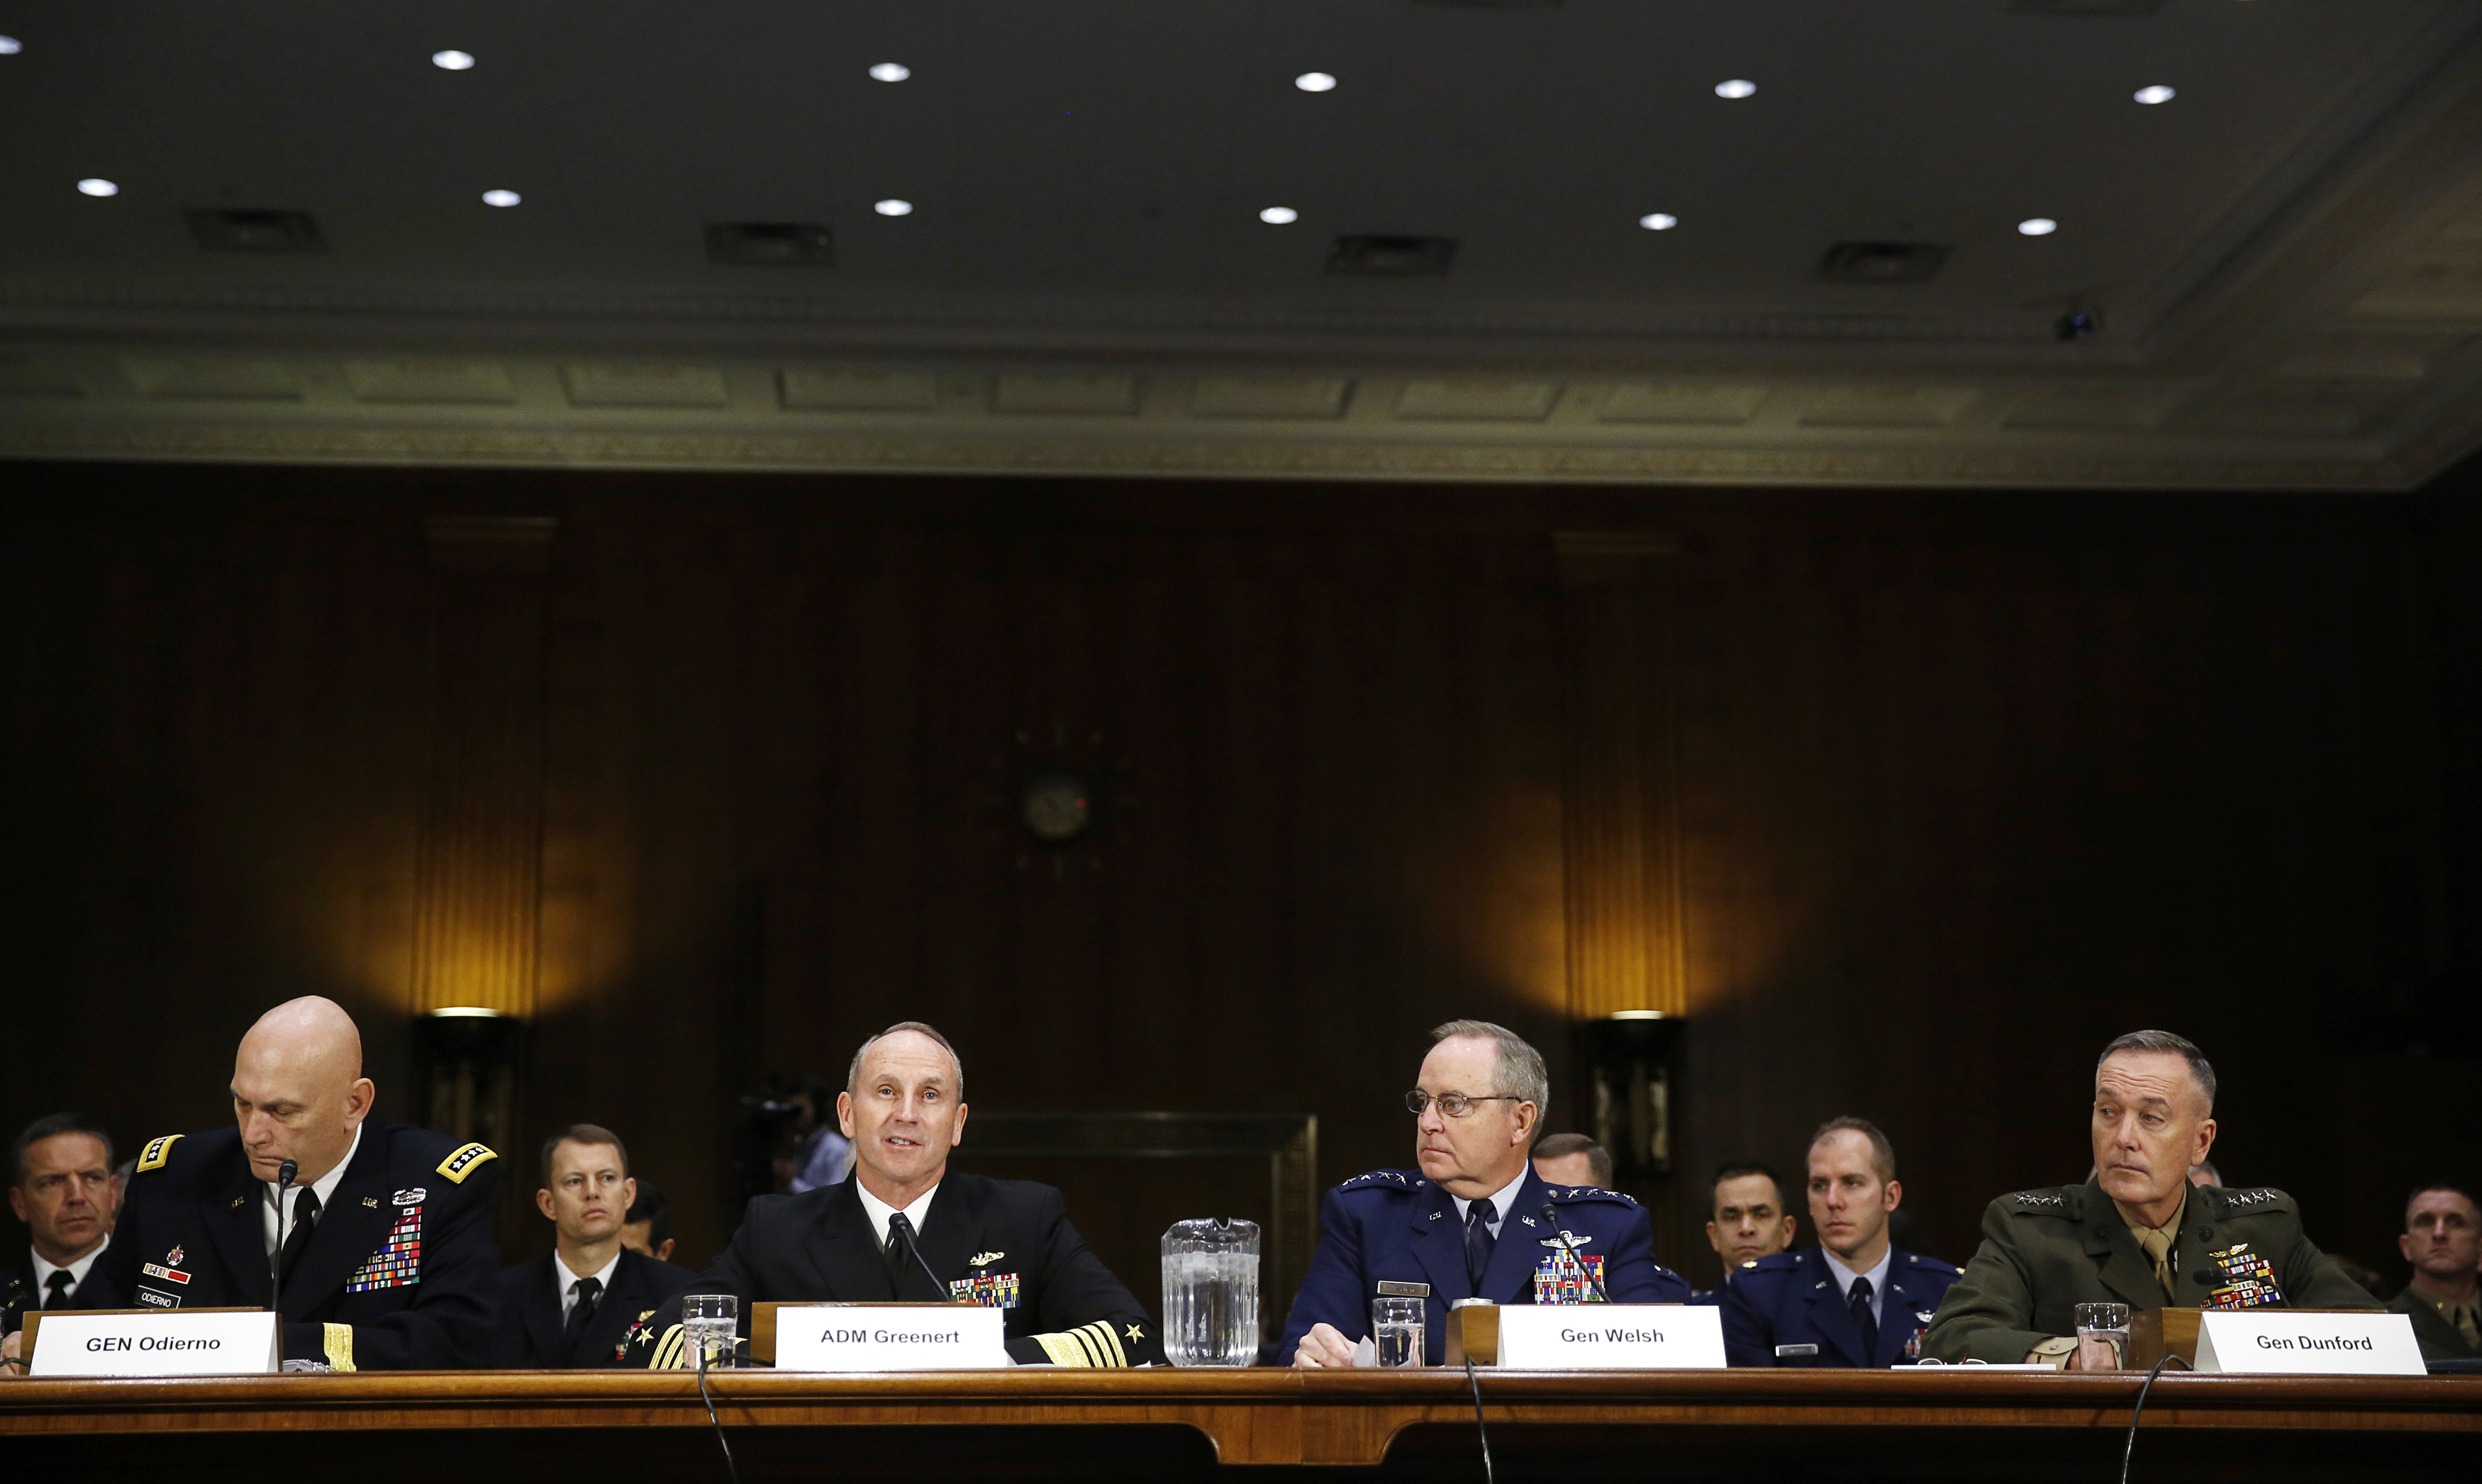 General Raymond Odierno (Army), Admiral Jonathan Greenert (Navy), General Mark Welsh (Air Force), and General Joseph Dunford (Marines) warned a Senate panel Wednesday of the dangers they see if their services' budgets are cut.